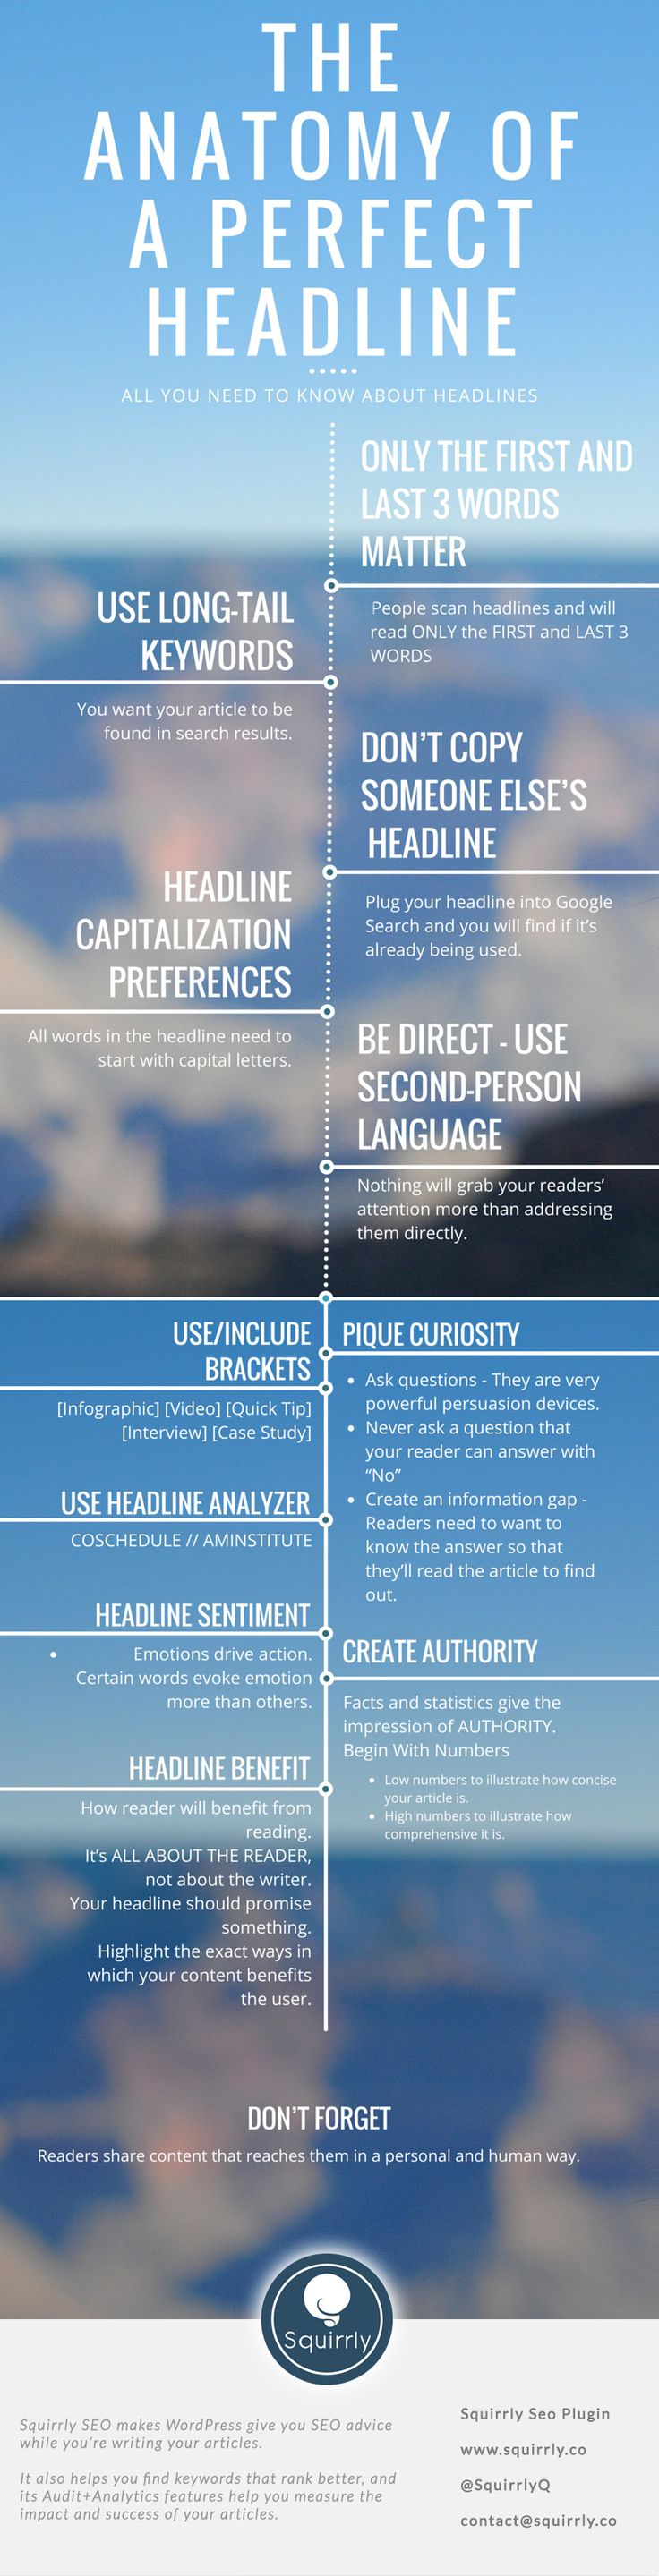 We've created an infographic revealing the most important headline tricks for 2016 that all writers need to keep in mind if they want to improve their work. You will find how to write good headlines. https://www.squirrly.co/how-to-write-perfect-headlines-that-give-you-results